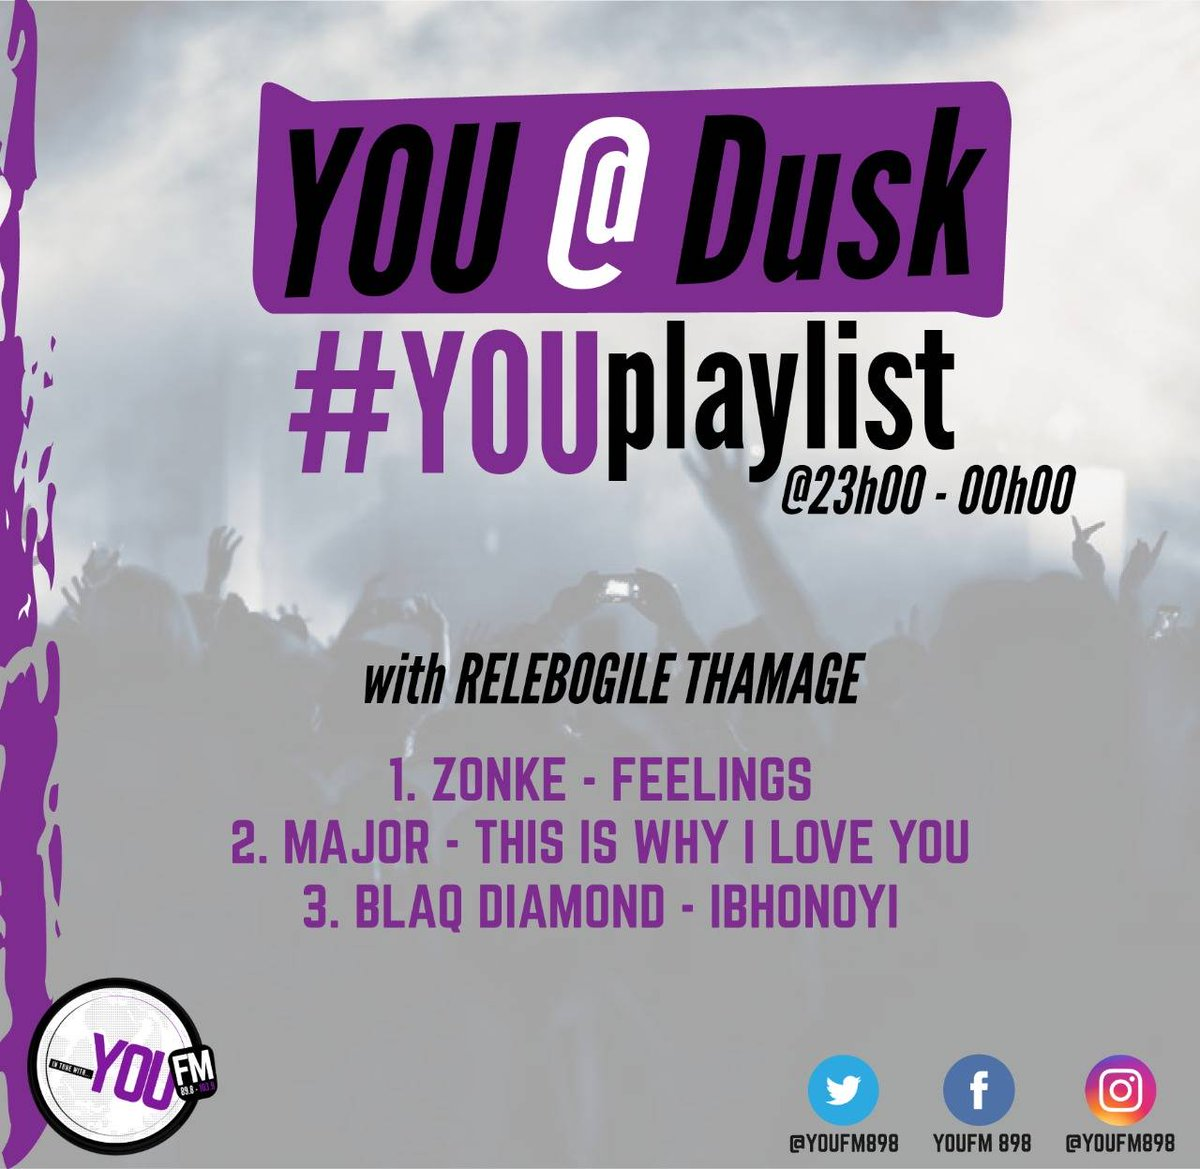 Good music brings good memories #YOUPlaylist   #YOUAtDusk with @vincentmaseko1  DSTV Channel 842  #CelebratingYOU #YOUInspireUs